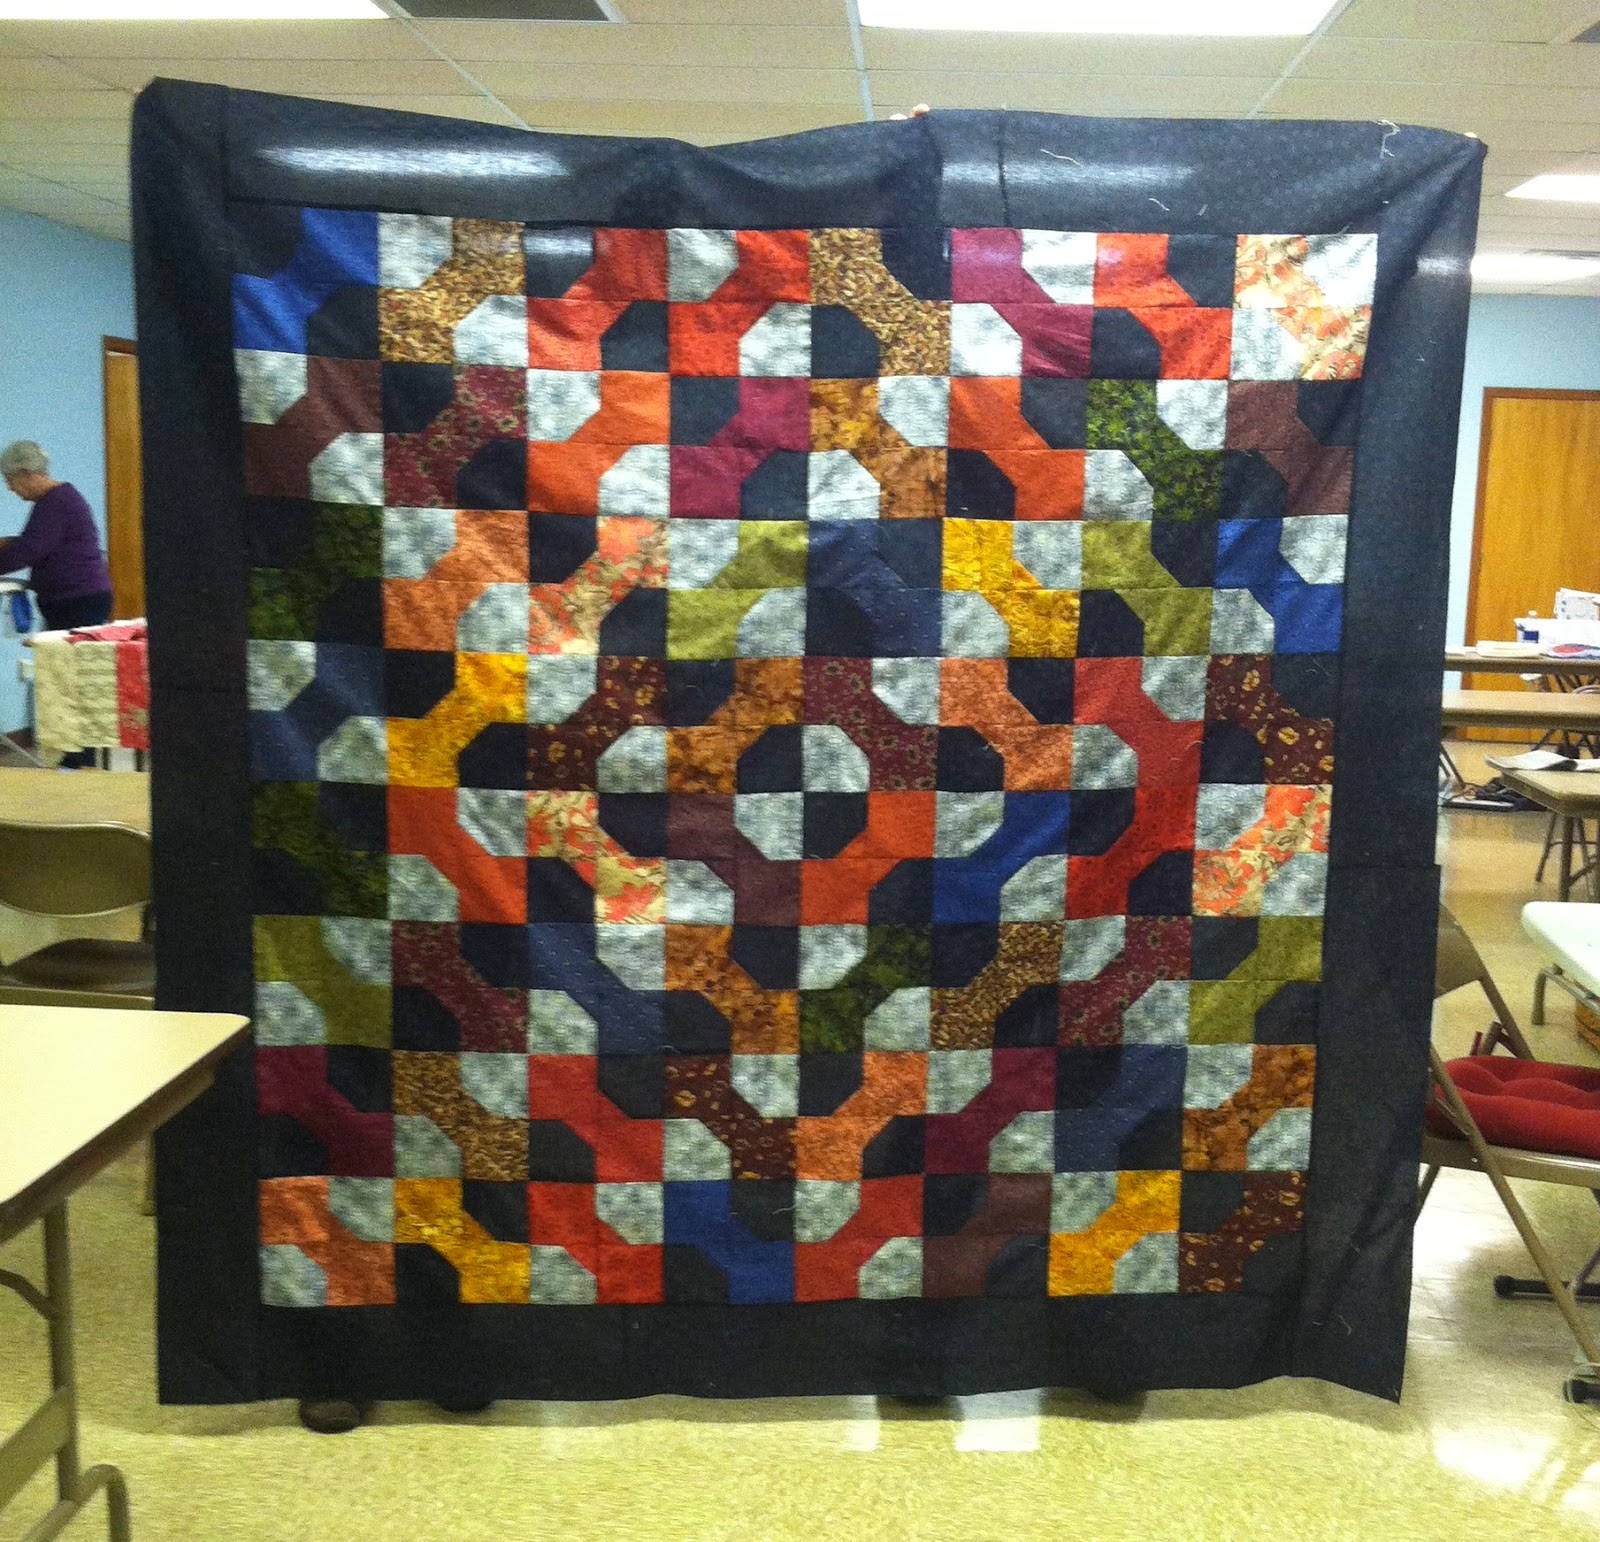 Old Bags Day - Sewing with Friends - Great Scrappy Quilt